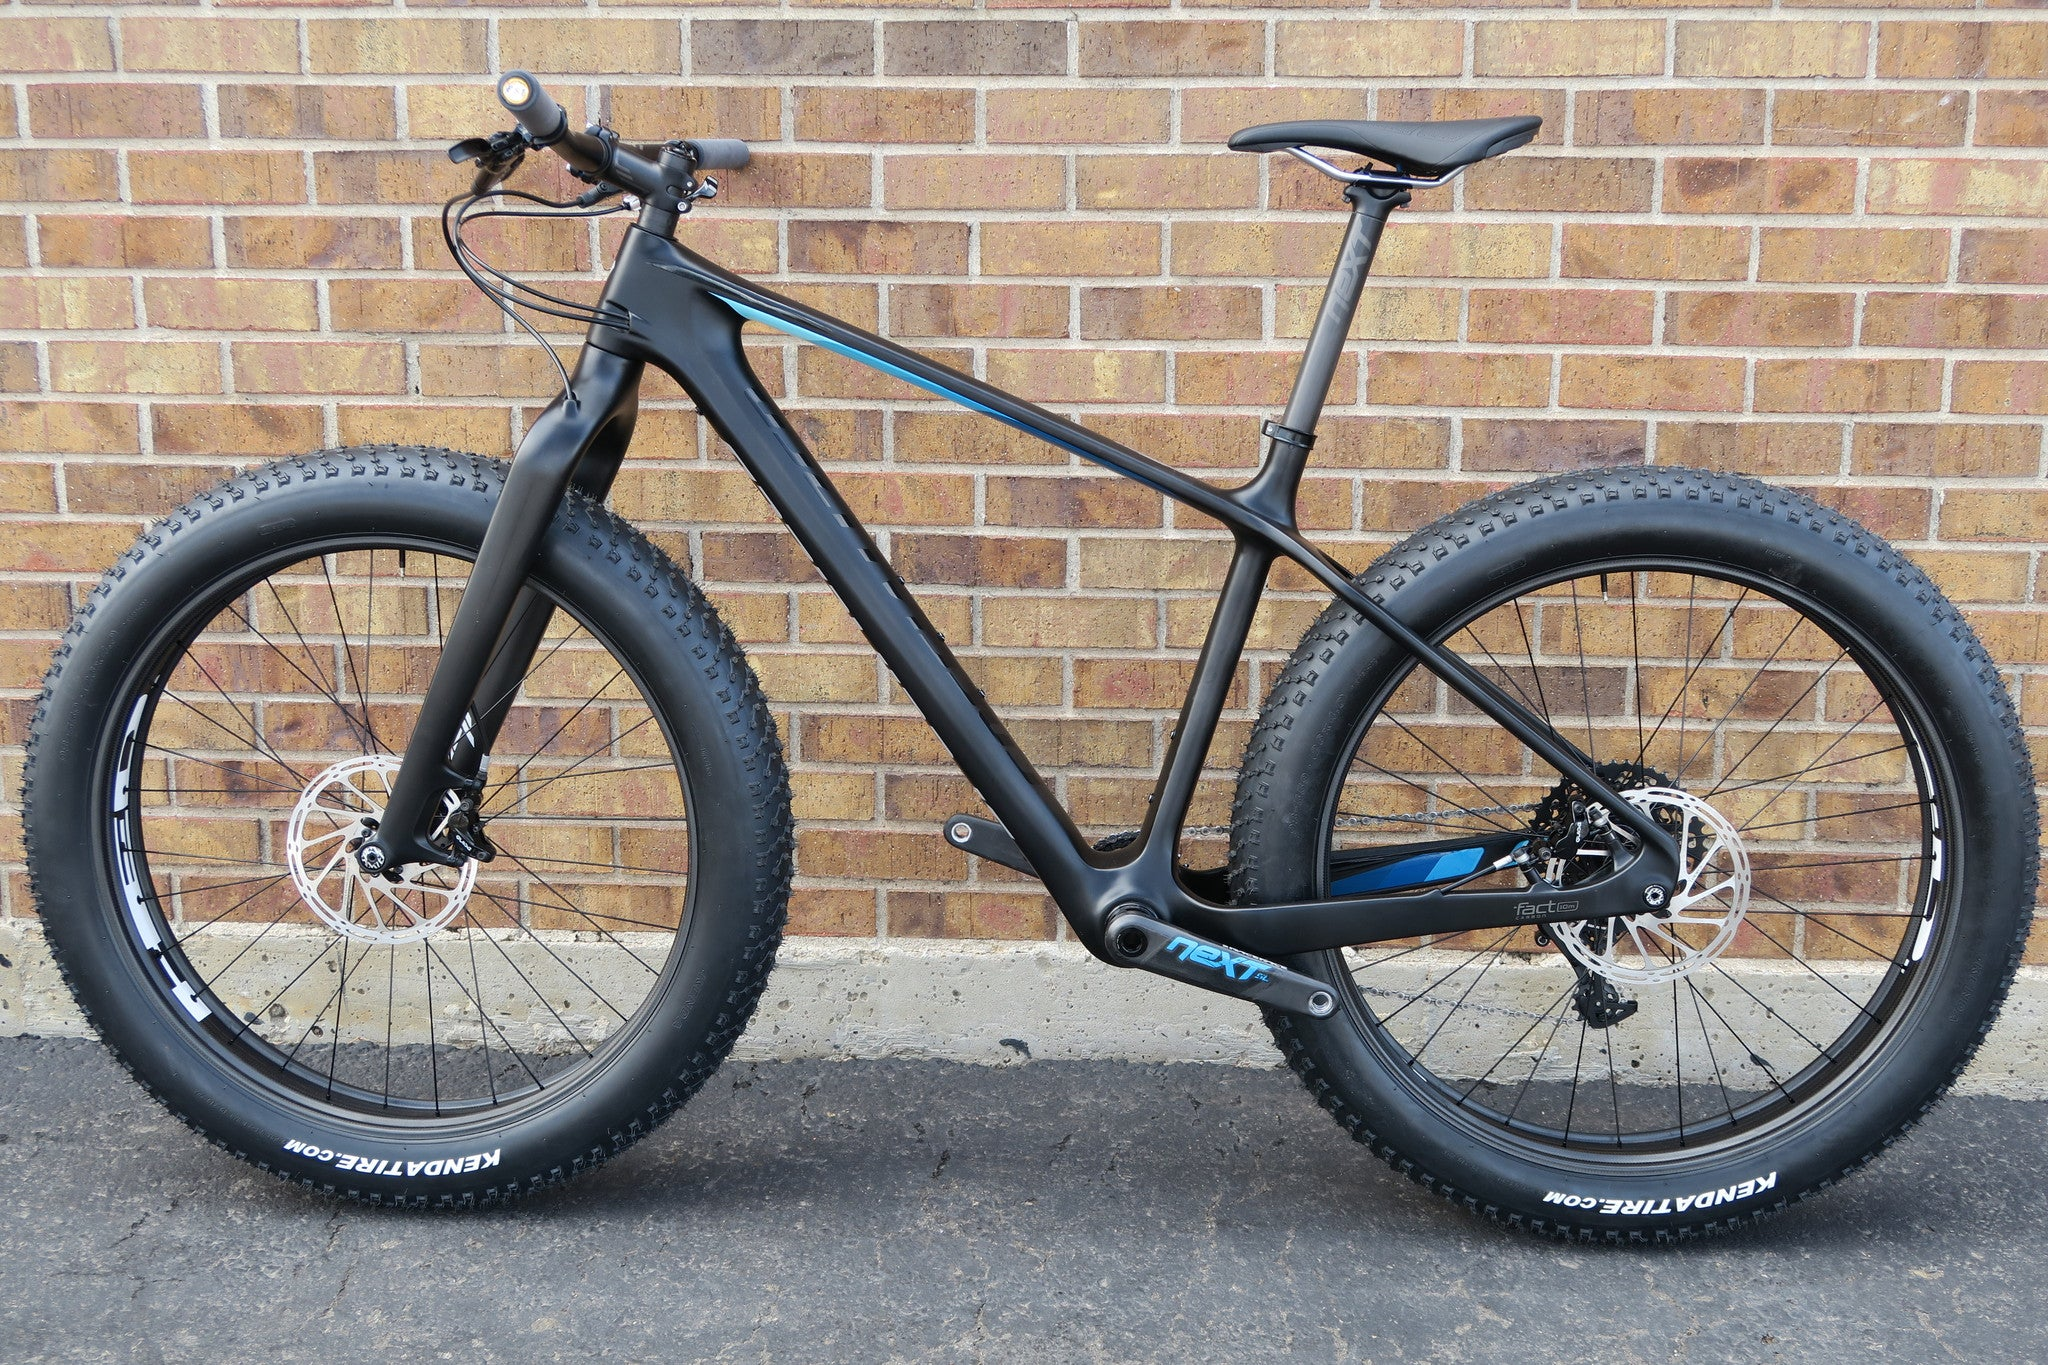 2016 SPECIALIZED FATBOY EXPERT CARBON